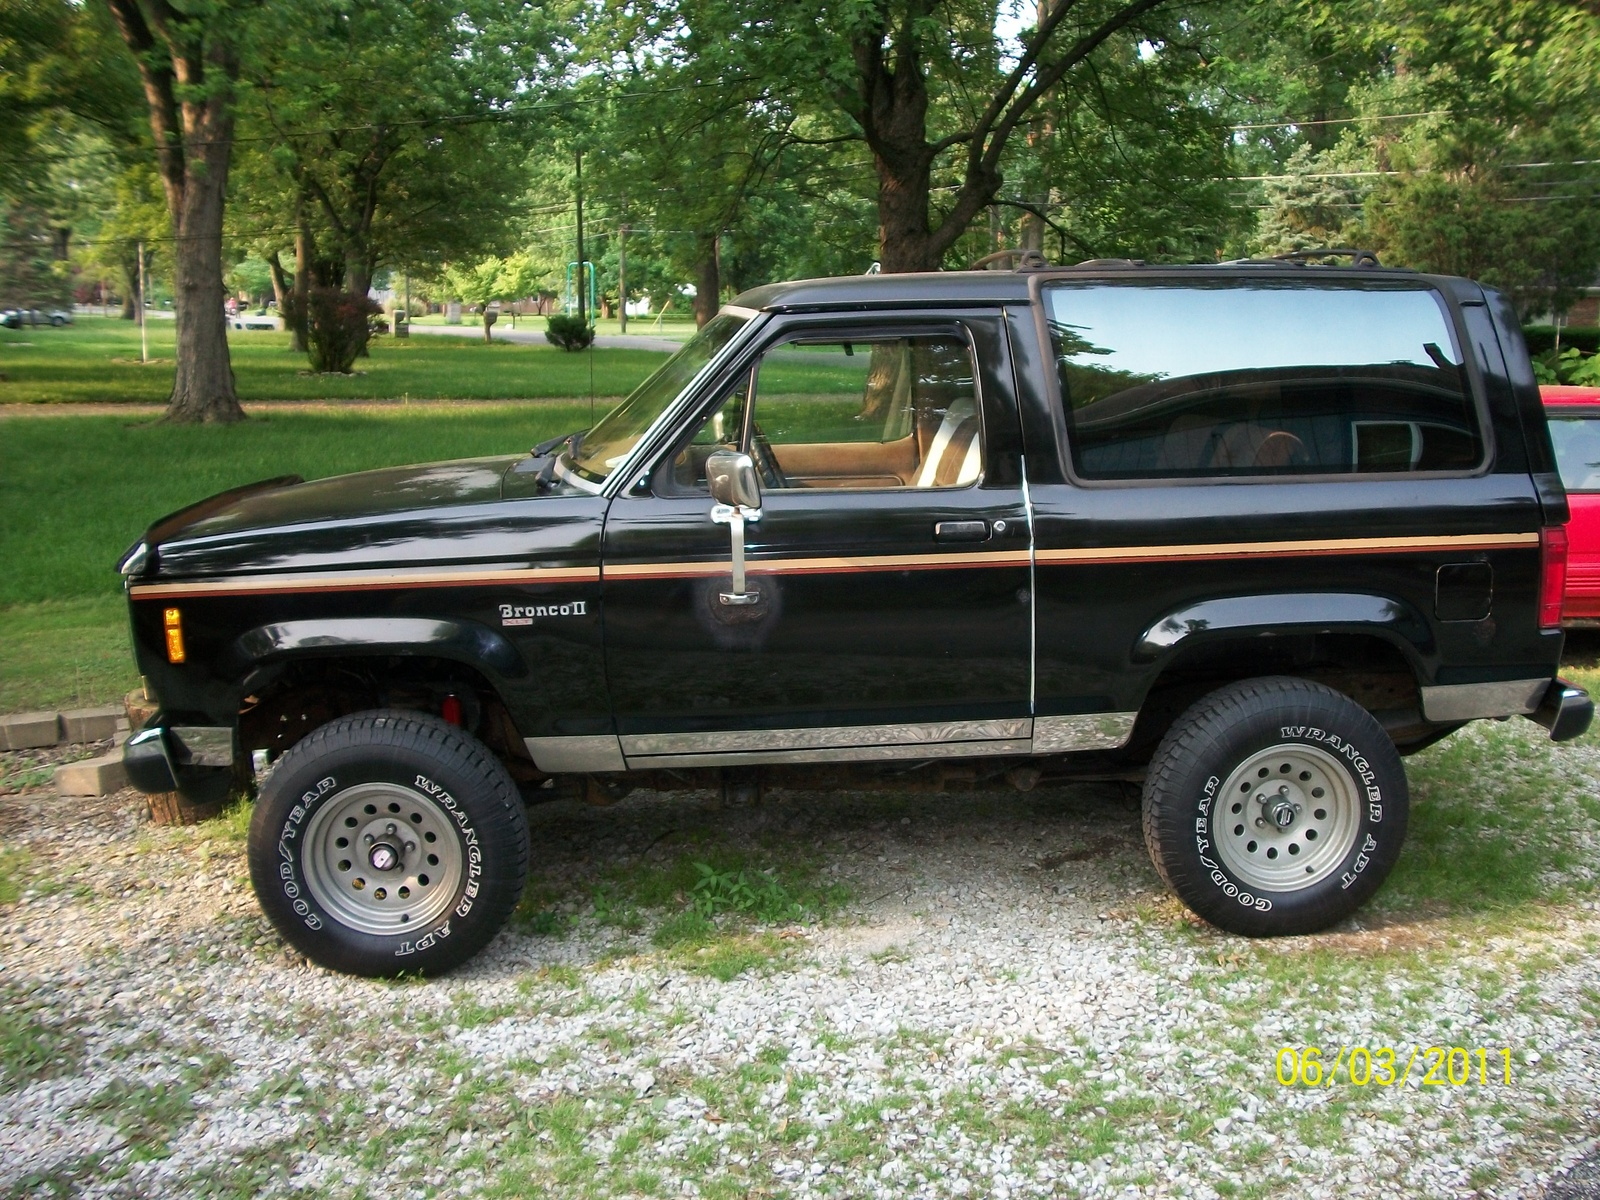 10 Ford Bronco Ii Interframe Media 1980 Ranger Traxxas